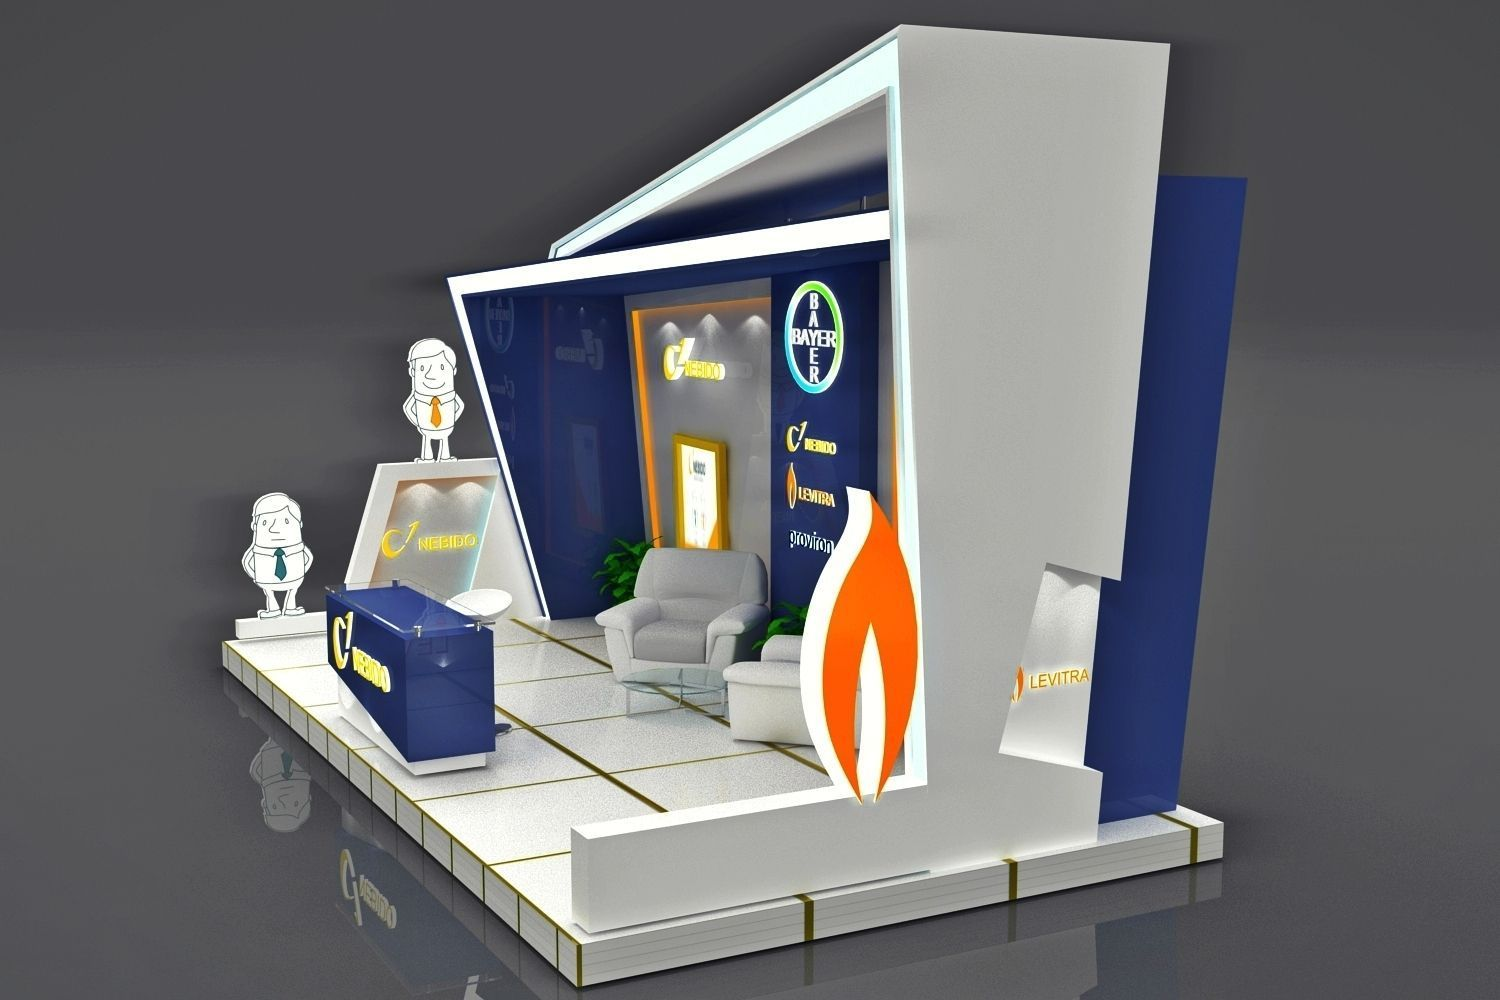 Exhibition Booth Obj : Exhibition booth d model rigged max obj mtl cgtrader